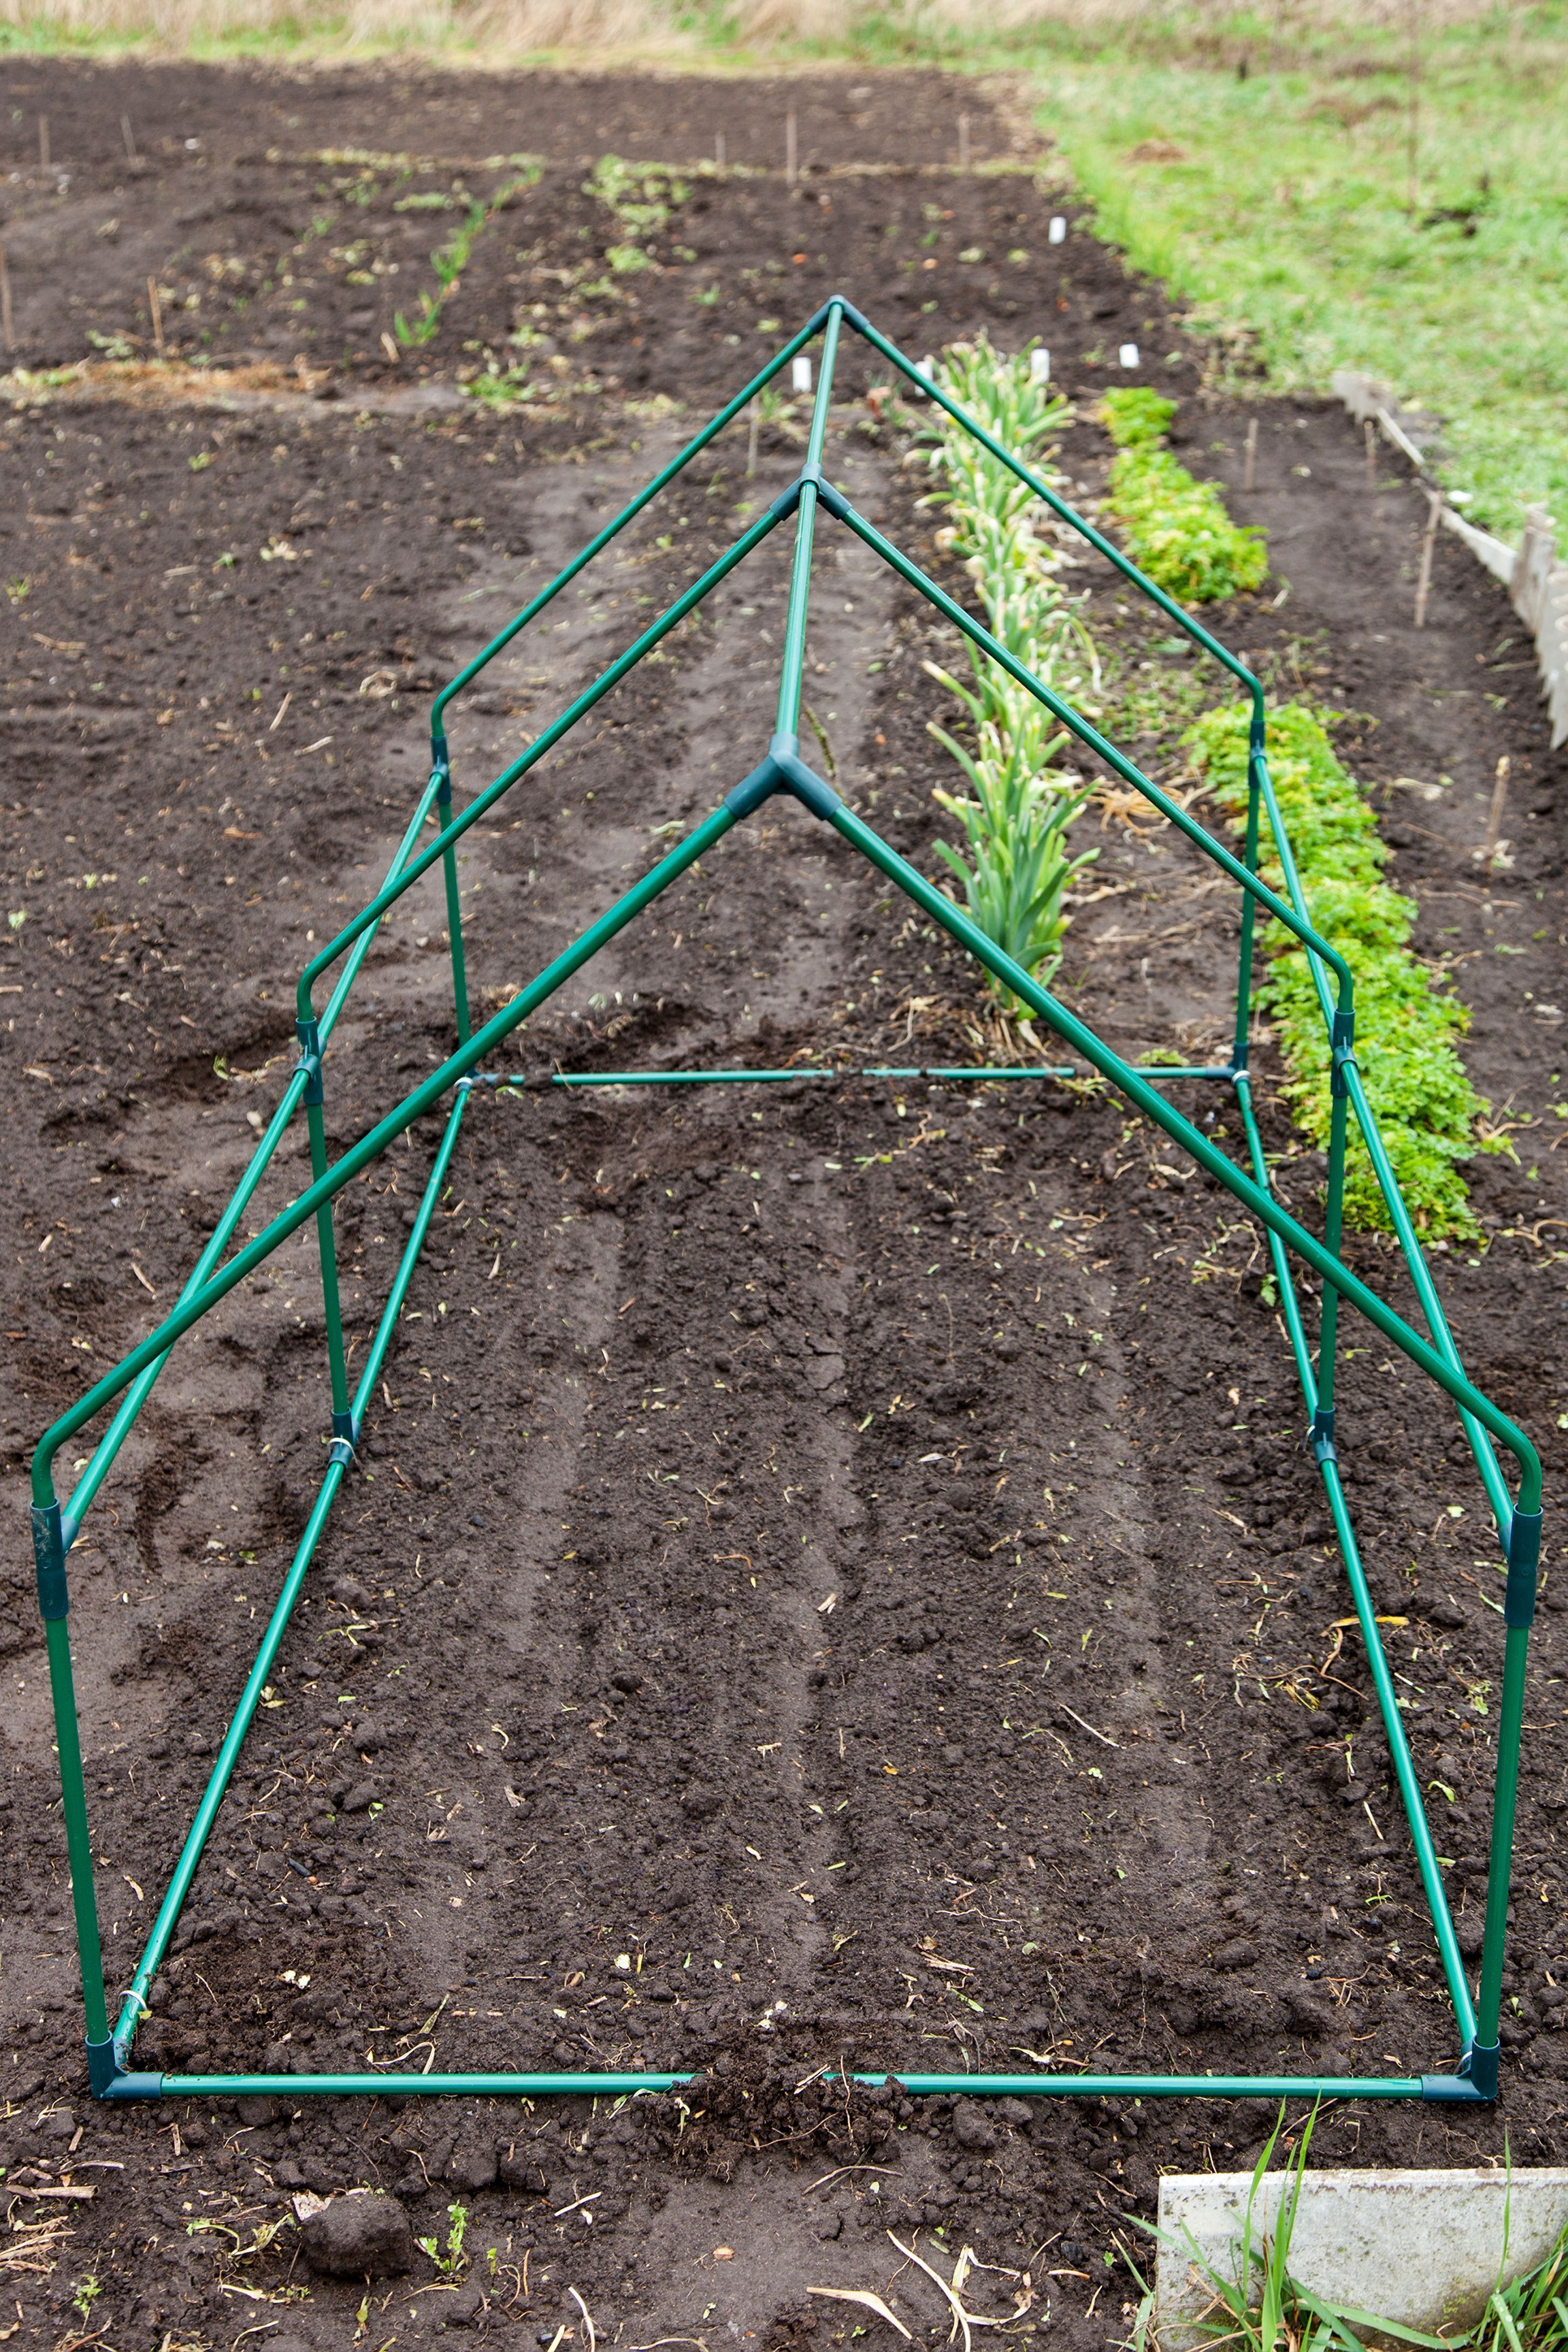 Vegetables You Can Start In August For A Full Fall Harvest 11 vegetables you can plant in August for a fall harvest. What to grow and how to keep your garden from freezing. All organic gardening ideas.11 vegetables you can plant in August for a fall harvest. What to grow and how to keep your garden from freezing. All organic gardening ideas.